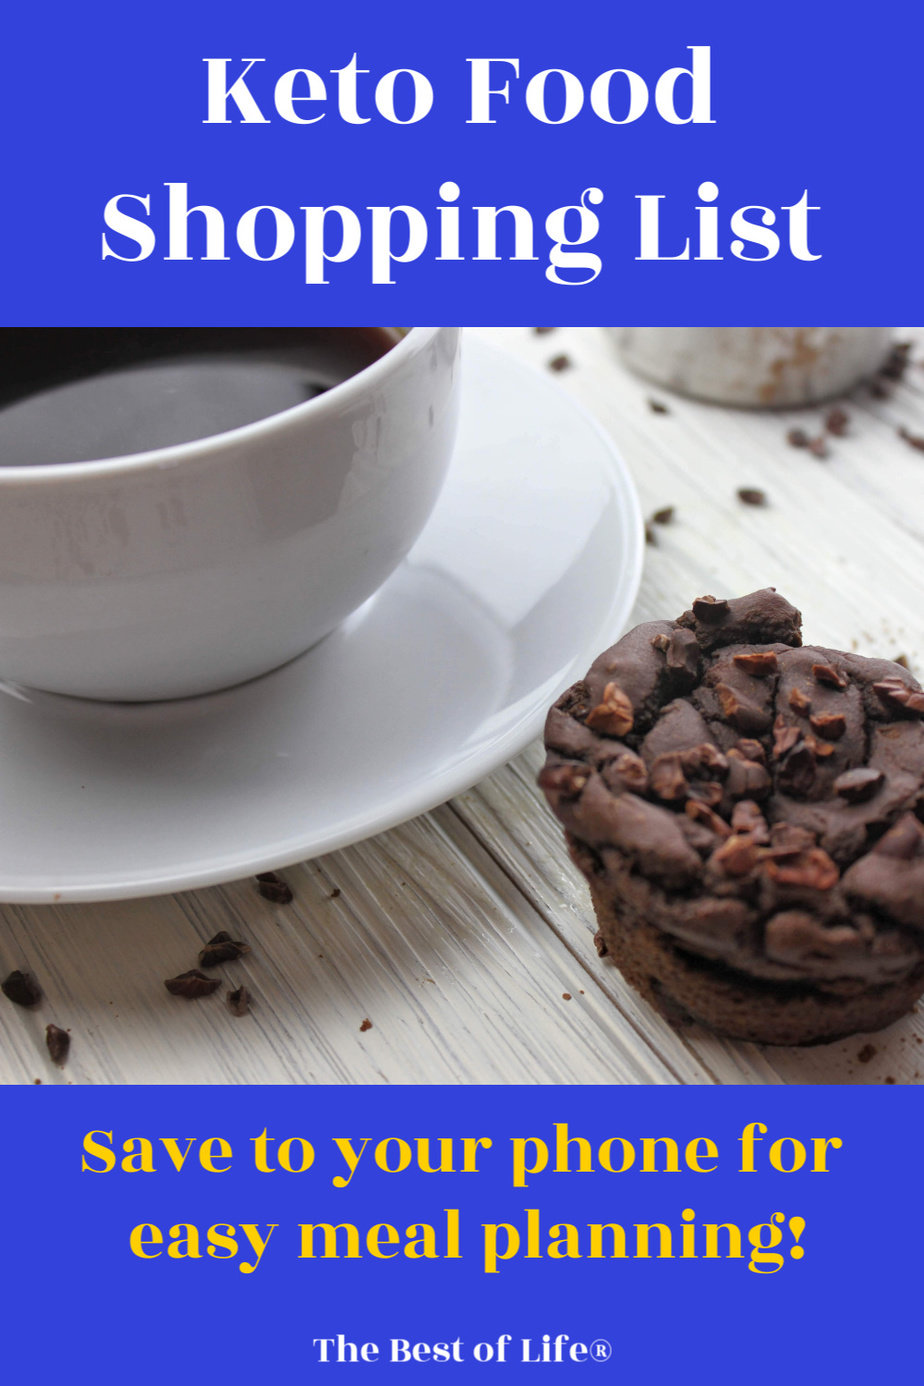 Keep this keto food shopping list on hand to make meal planning and grocery shopping easier so you stay on track with your ketogenic or low carb diet. Keto Diet Tips | Low Carb Diet Tips | Ketogenic Food List | What Can you Eat on a Keto Diet | Weight Loss Tips via @thebestoflife